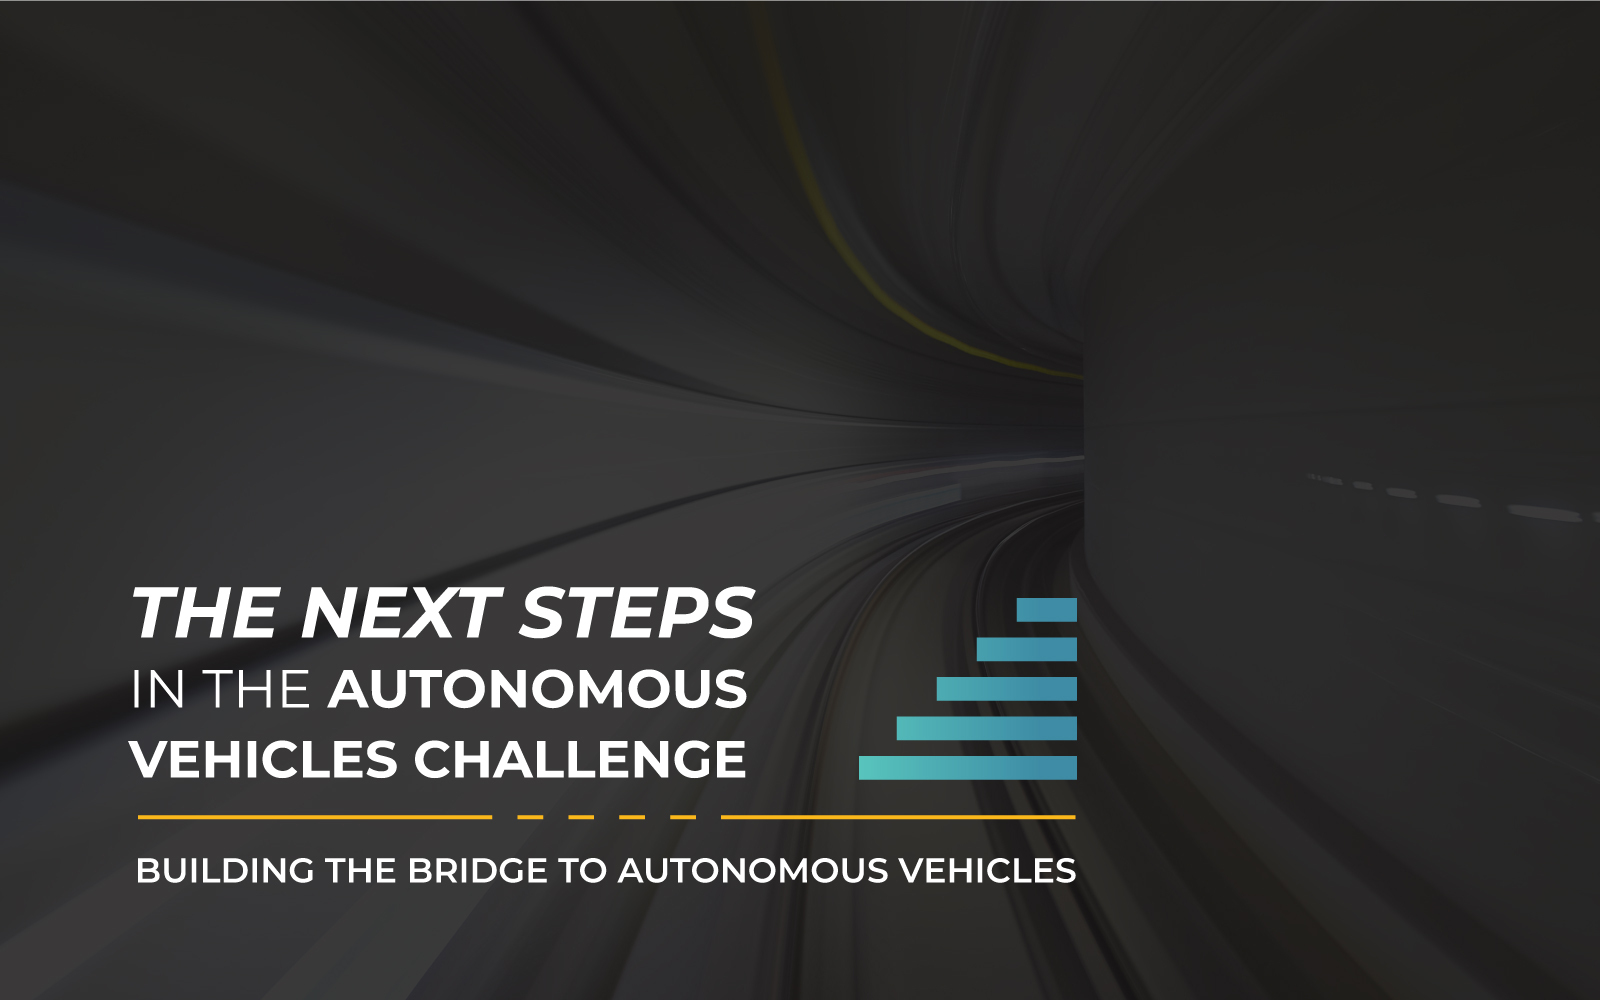 The next step in the autonomous systems challenge